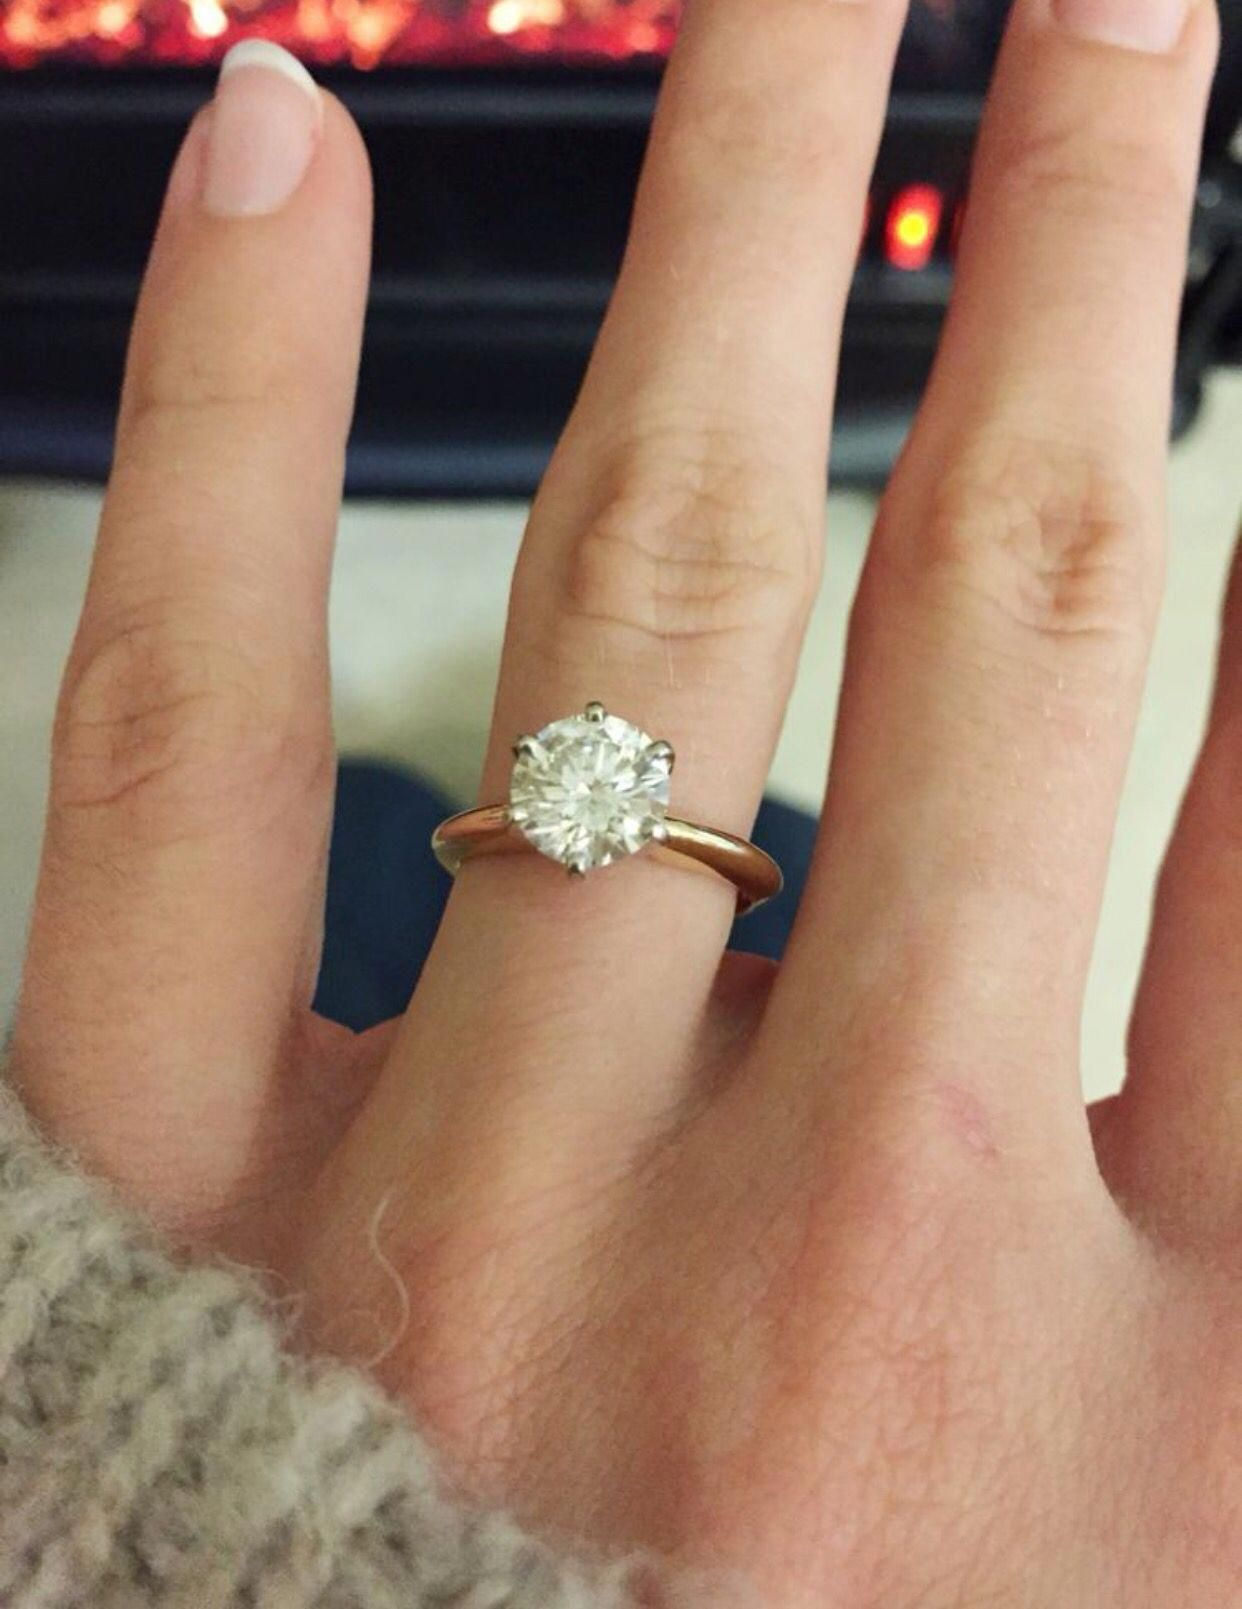 Nose piercing day 3  My dream engagement ring Itus so simple yet so stunning and elegant